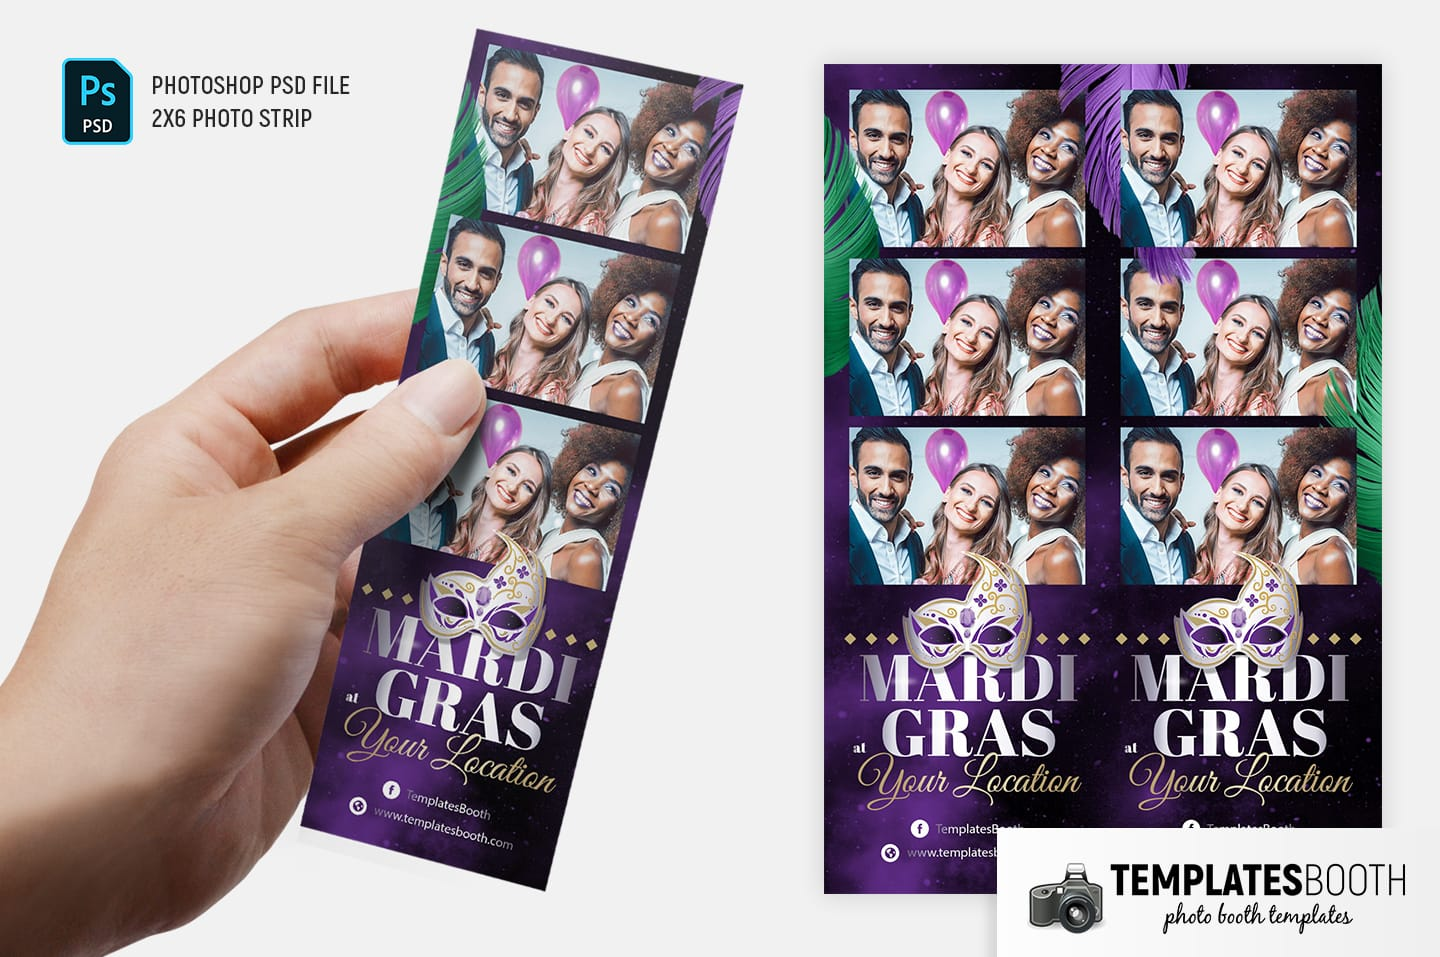 Mardi Gras Photo Booth Template (2x6 photo strip)